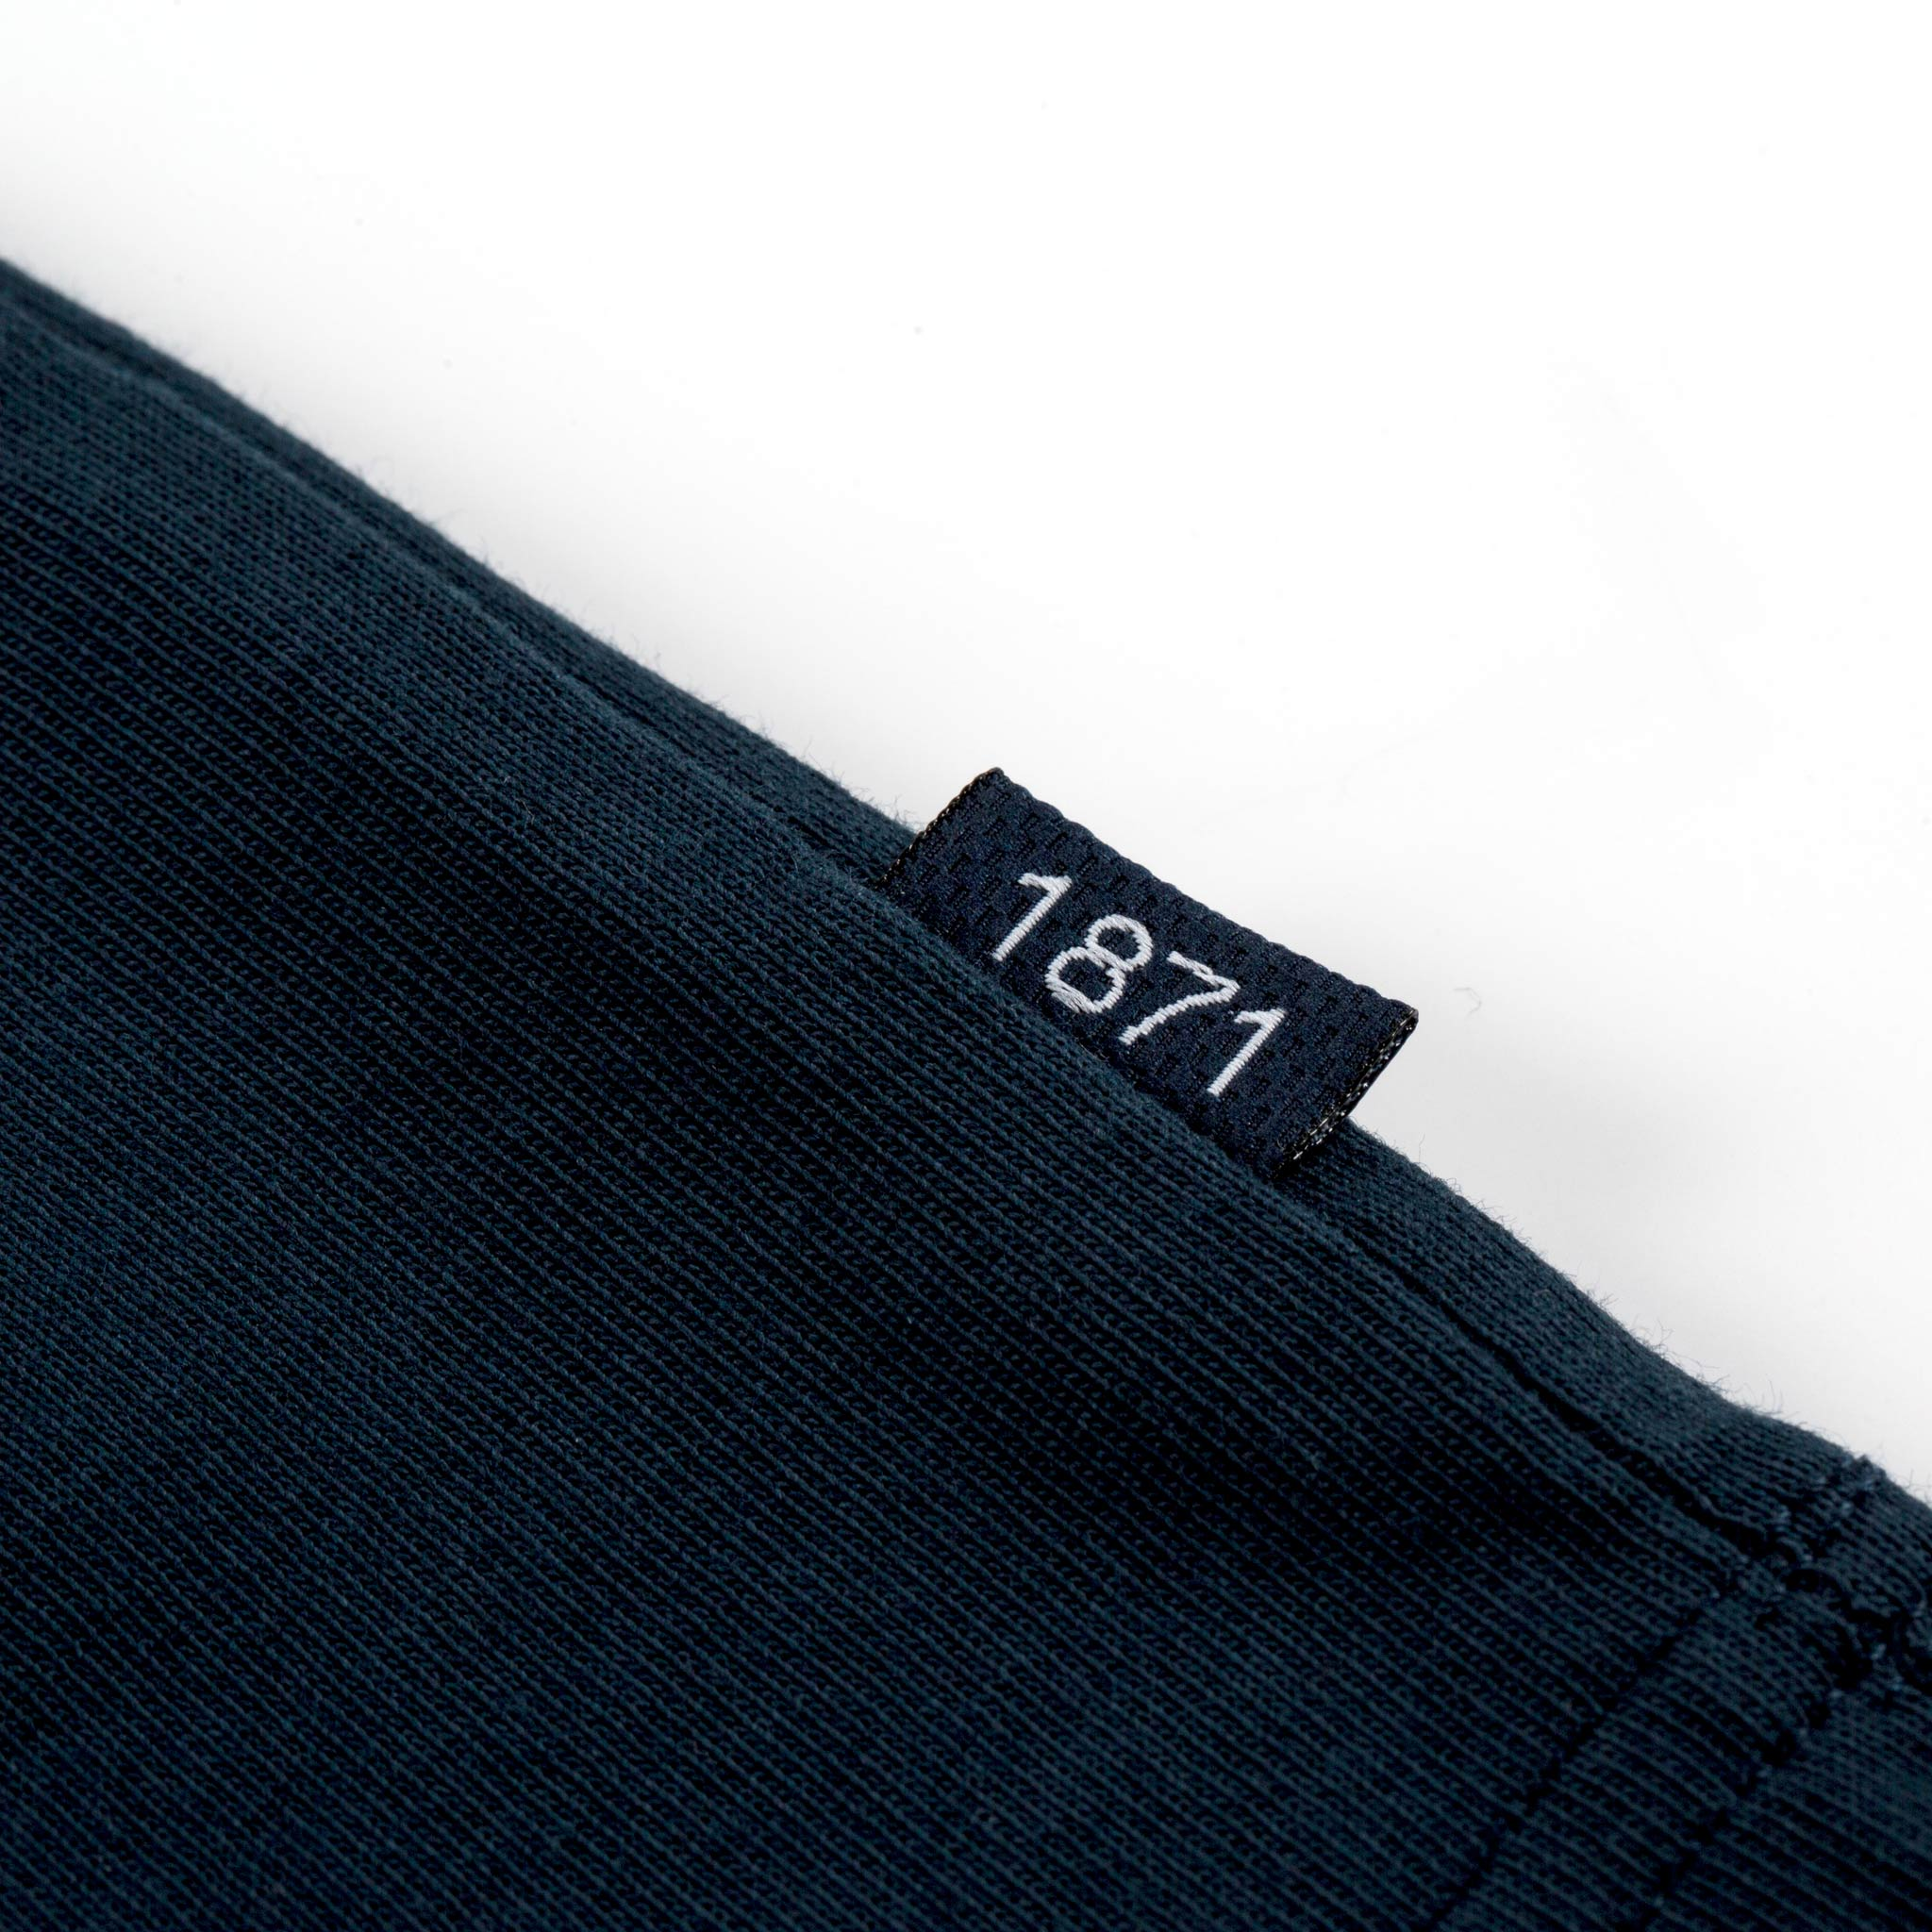 1871 Navy T-shirt tag